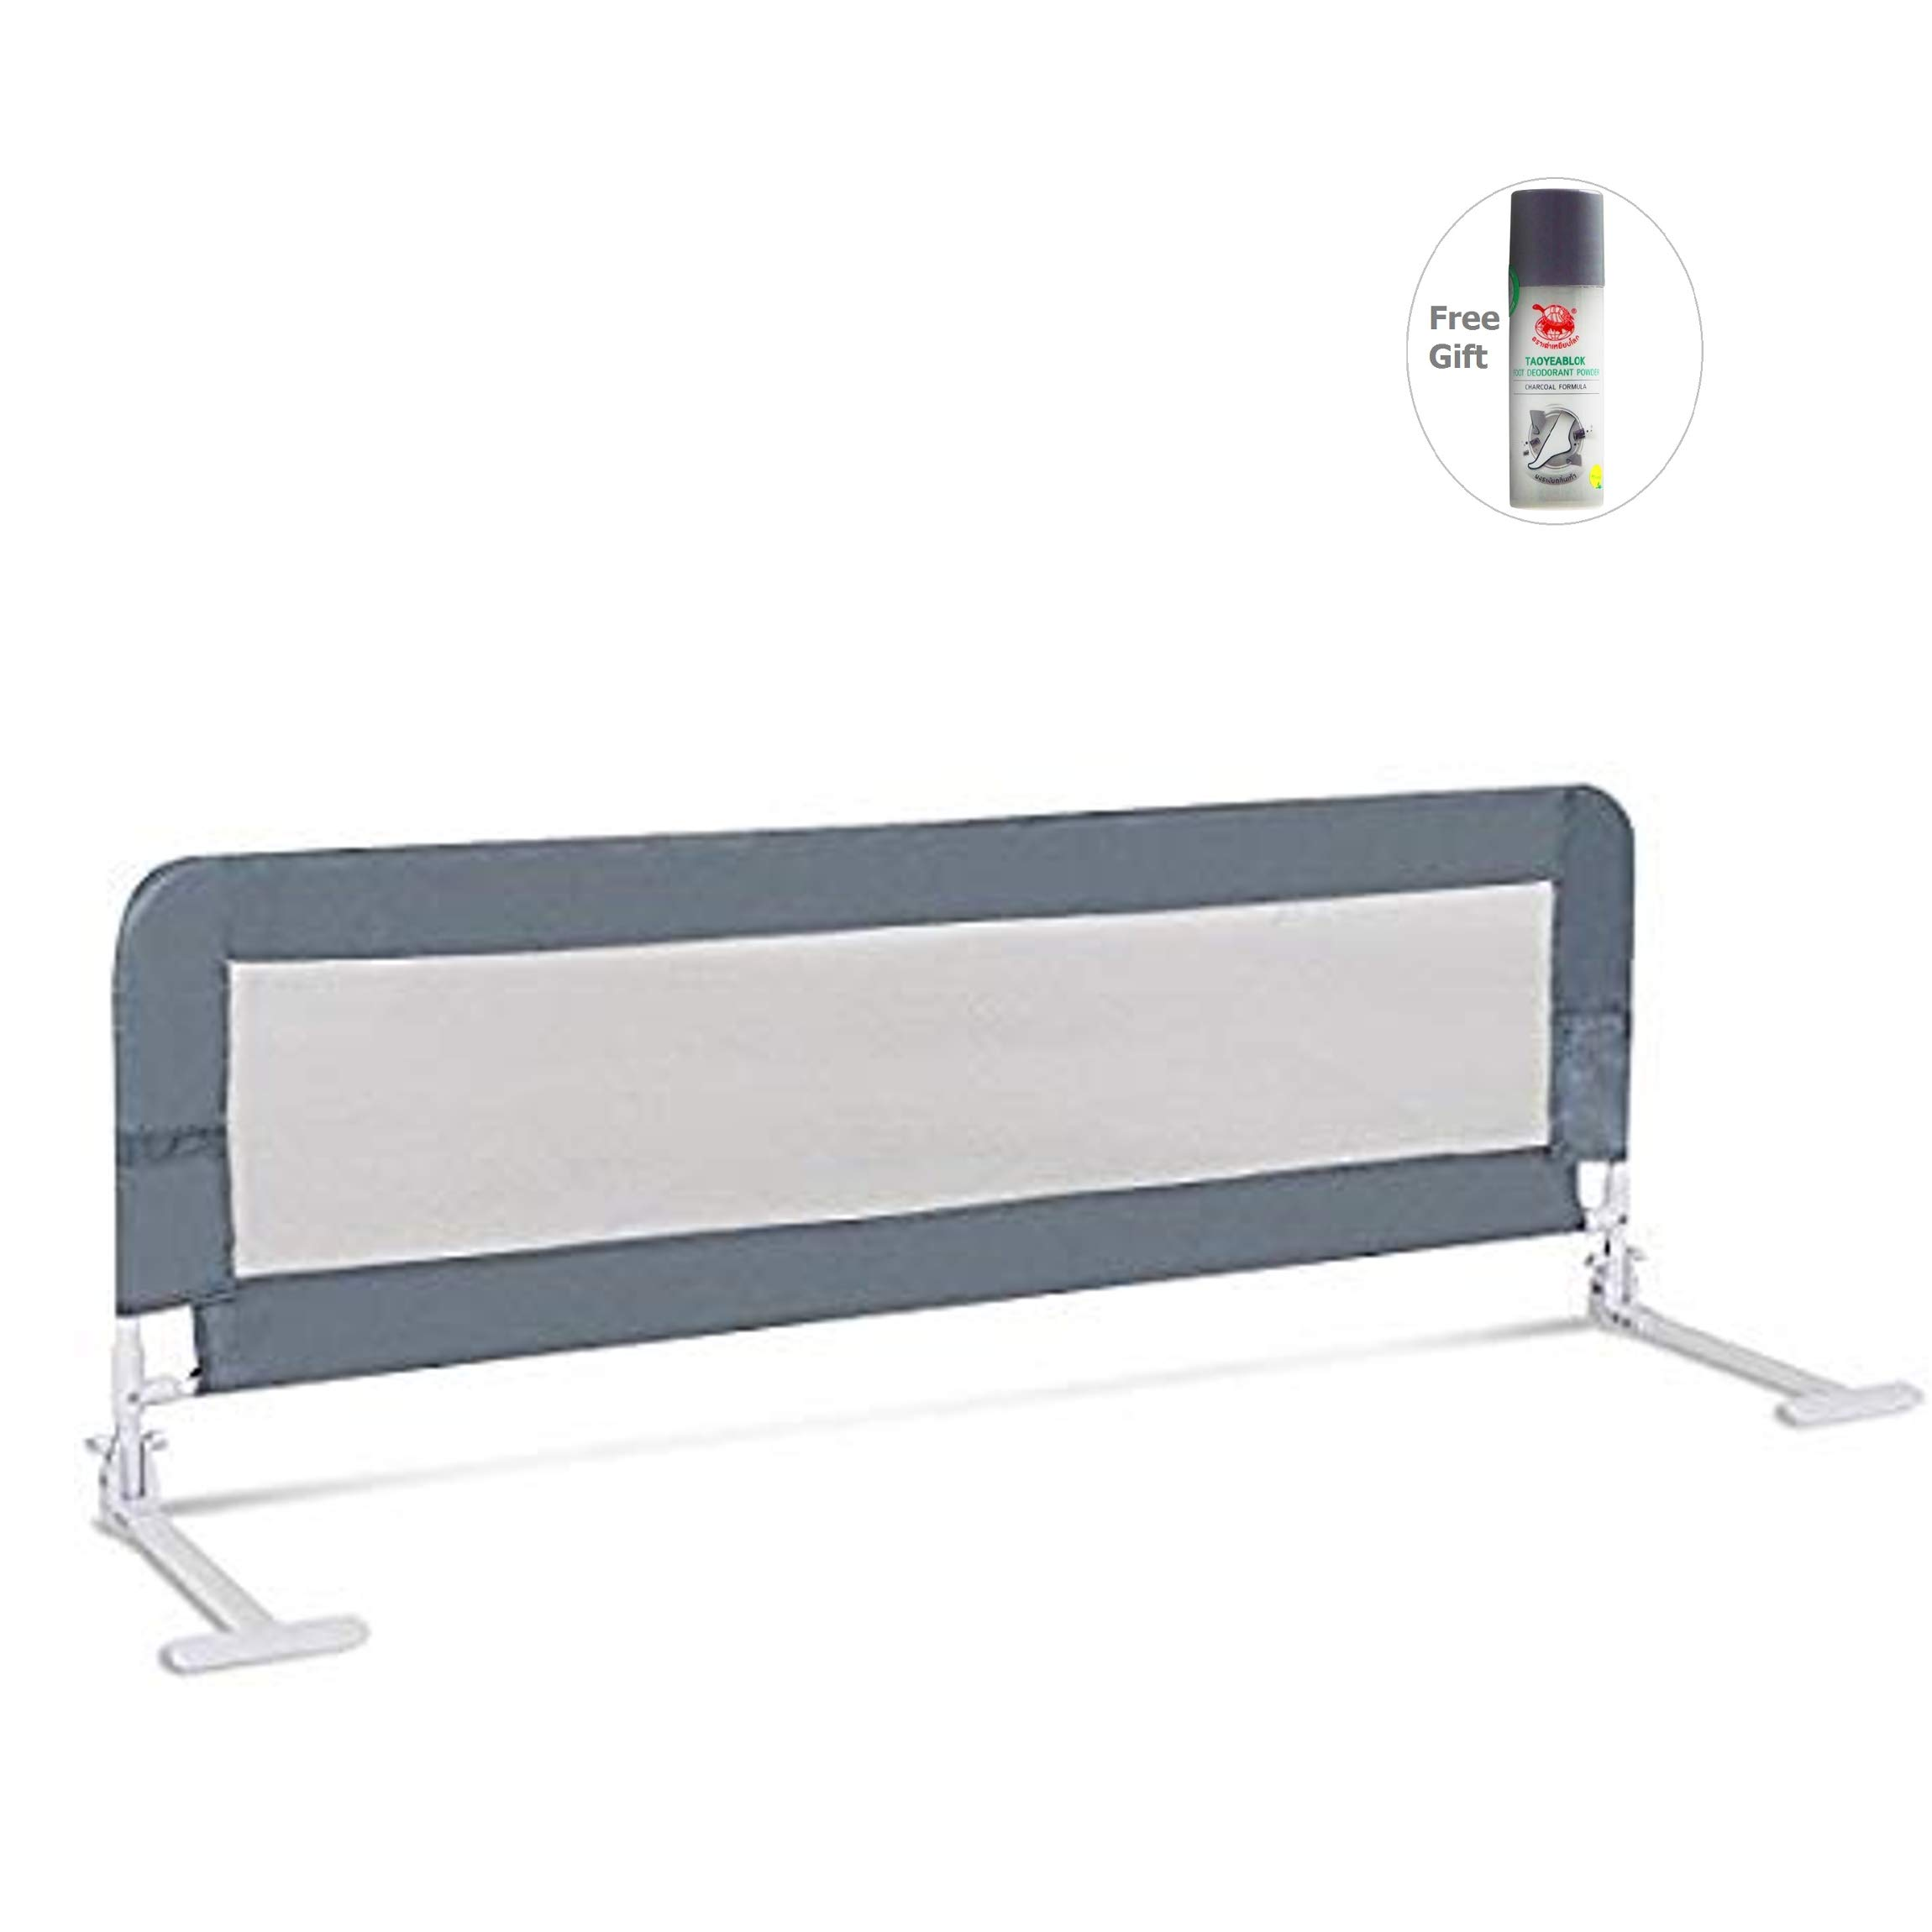 59'' Breathable Baby Children Toddler Bed Rail-Gray by Sunbizpro